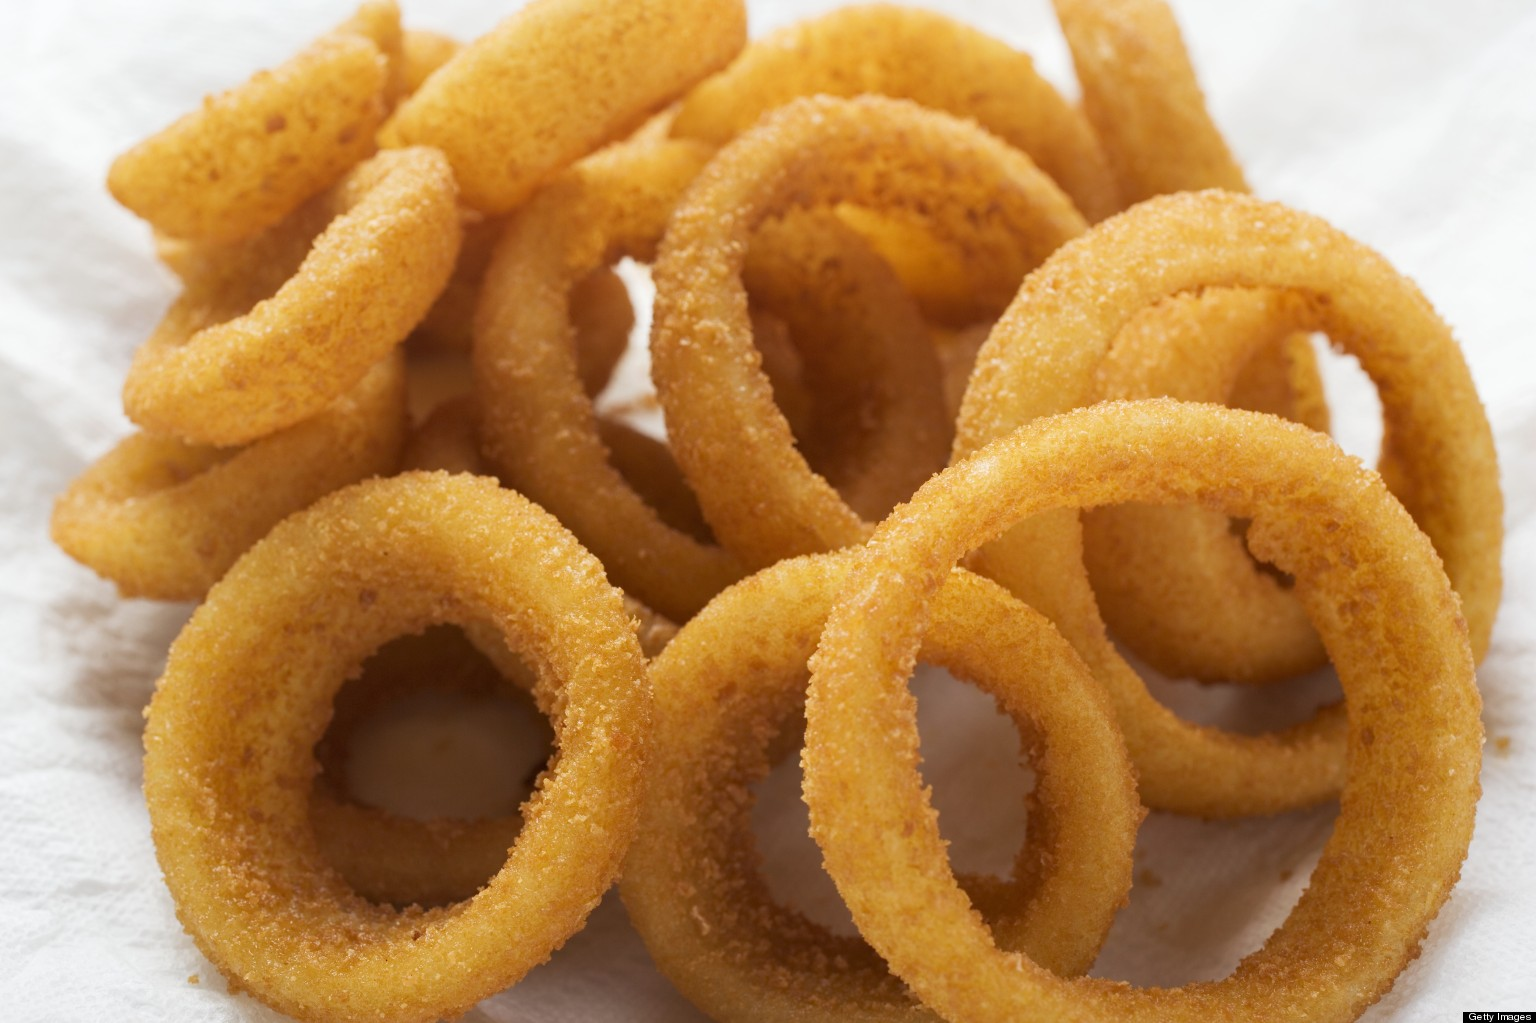 ... Worker, Framon Frasier, Over Cold Onion Rings | The Huffington Post